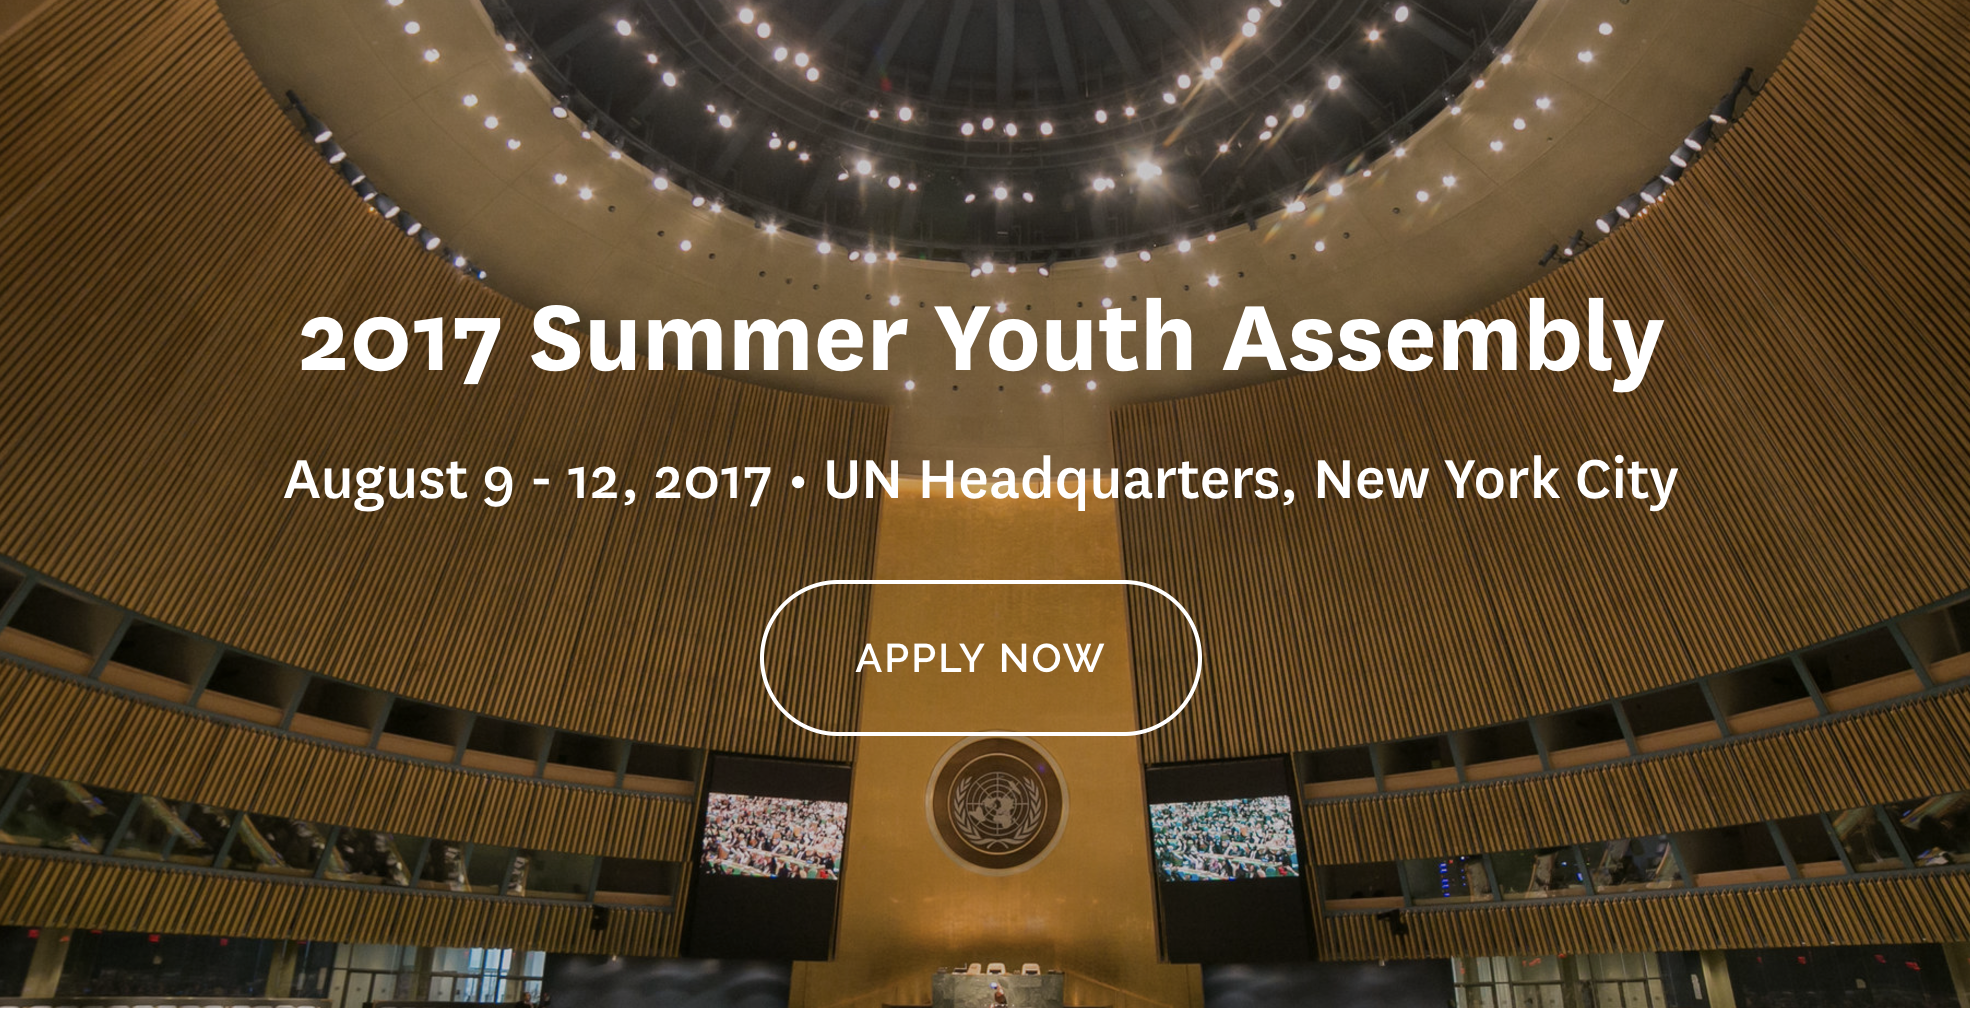 Apply: Summer Youth Assembly 2017 at UN Headquarters in New York! (Scholarship Available)